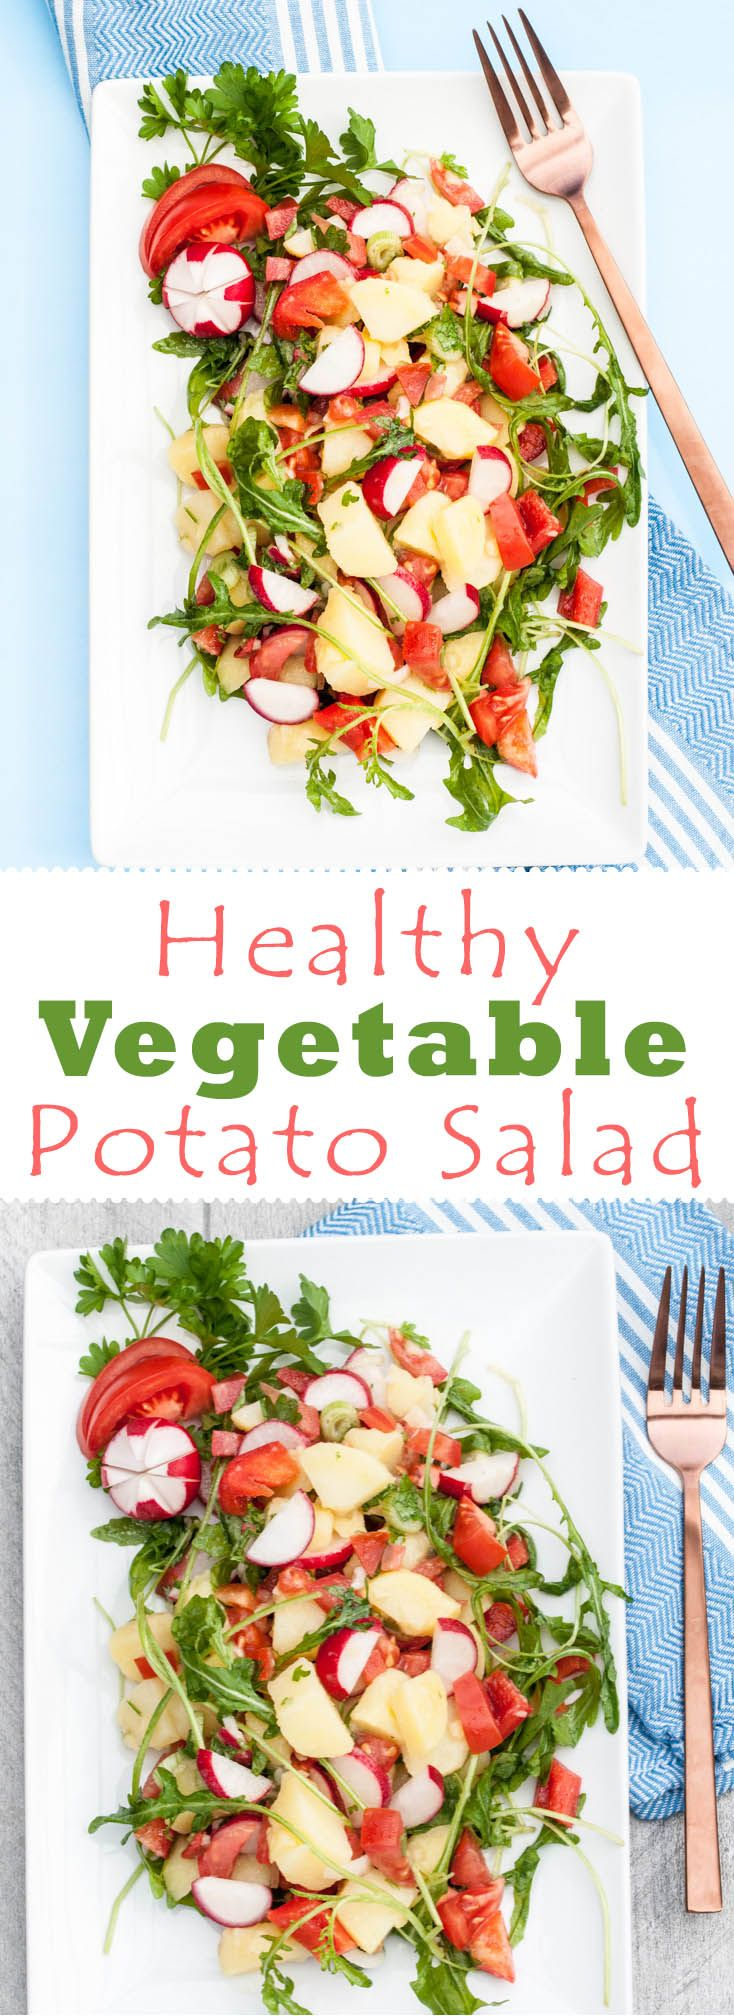 Healthy Vegetable Potato Salad loaded with lots of veggies! Super healthy side or even as a main ;) /// VeganFamilyRecipes.com /// #potatoes #vegan #vegetarian